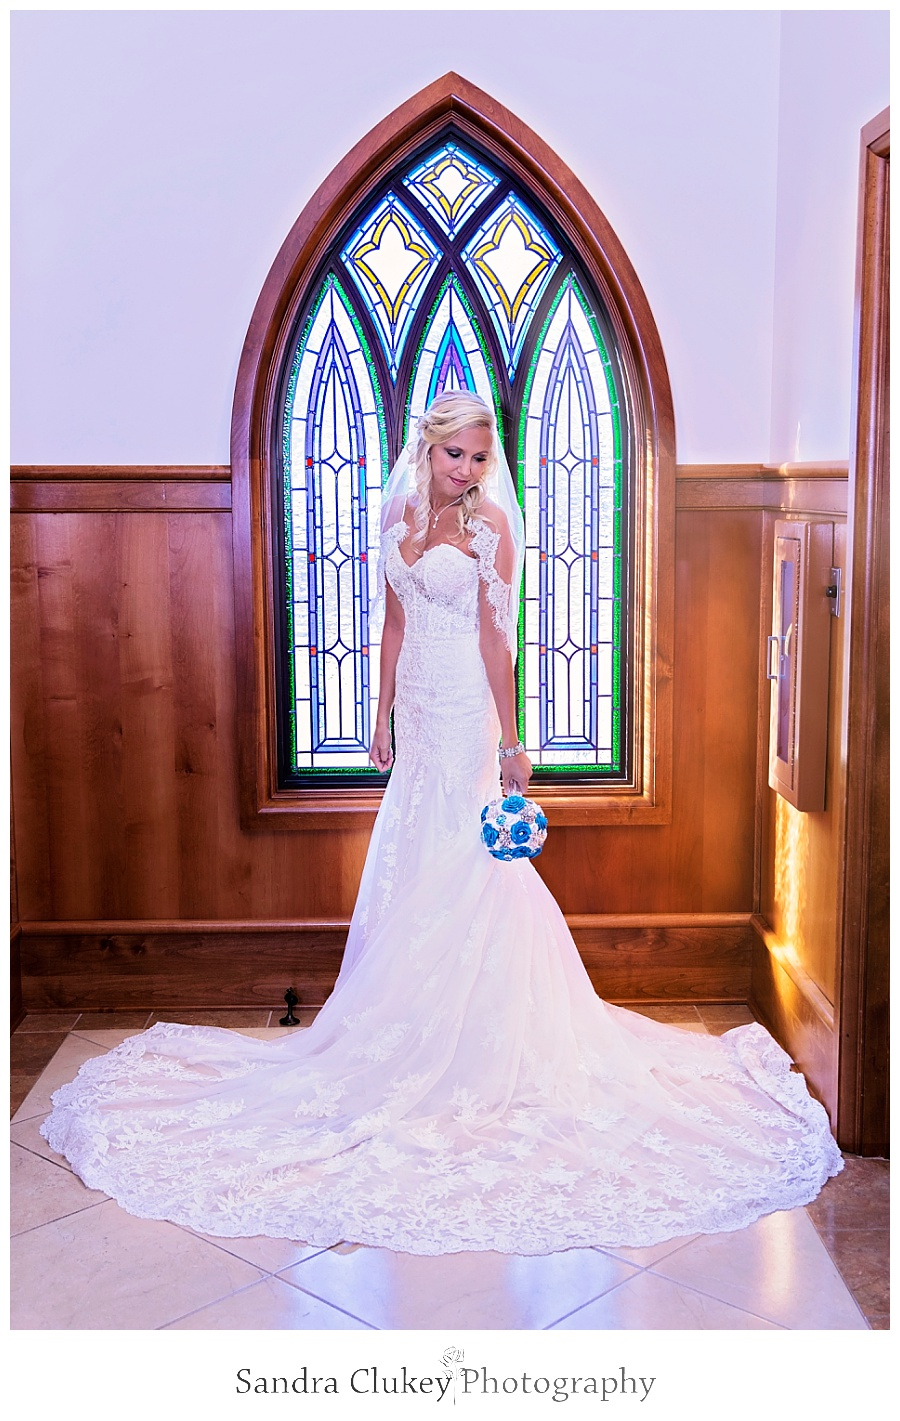 Bride at stained glass windows